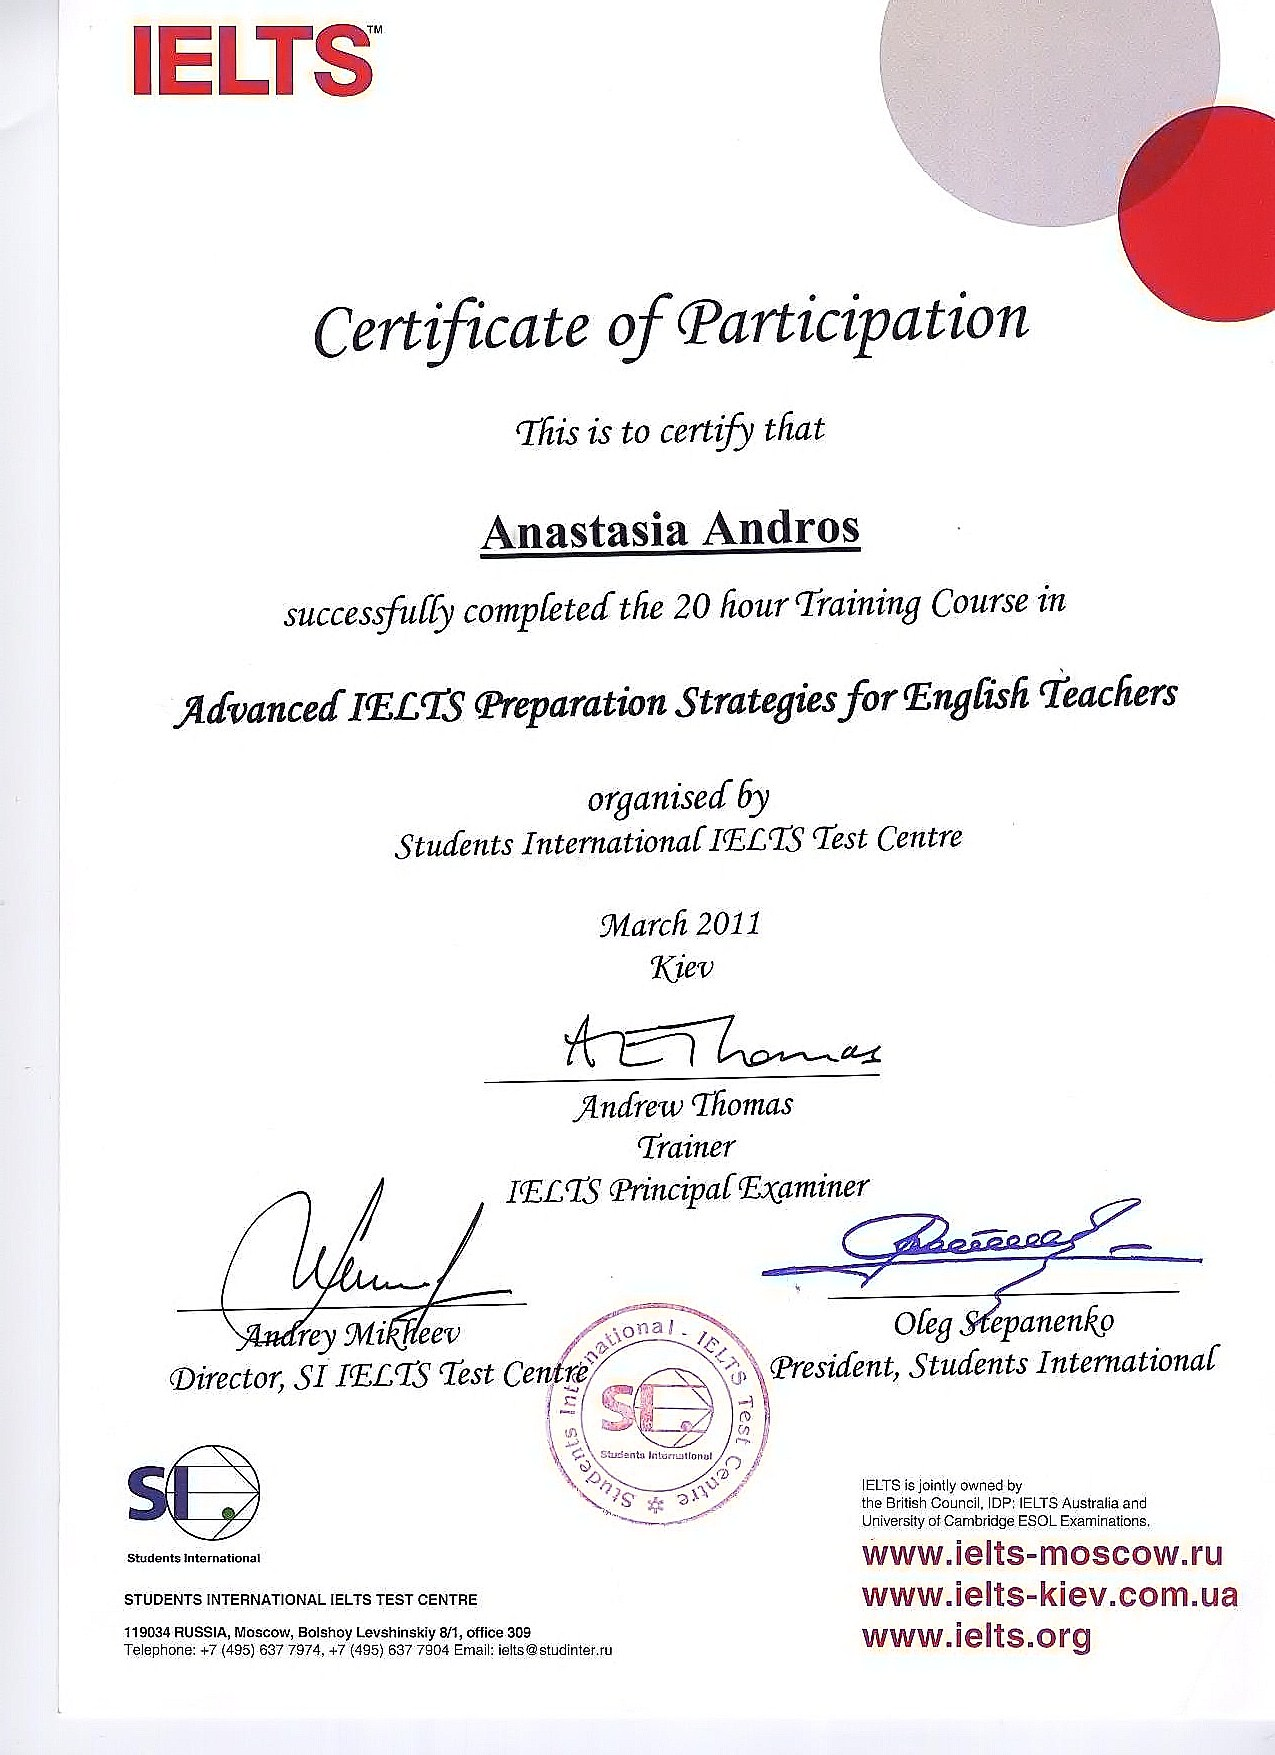 Certificate of Attendance, Advanced IELTS Preparation Strategies for English Teachers, Anastasia Andros